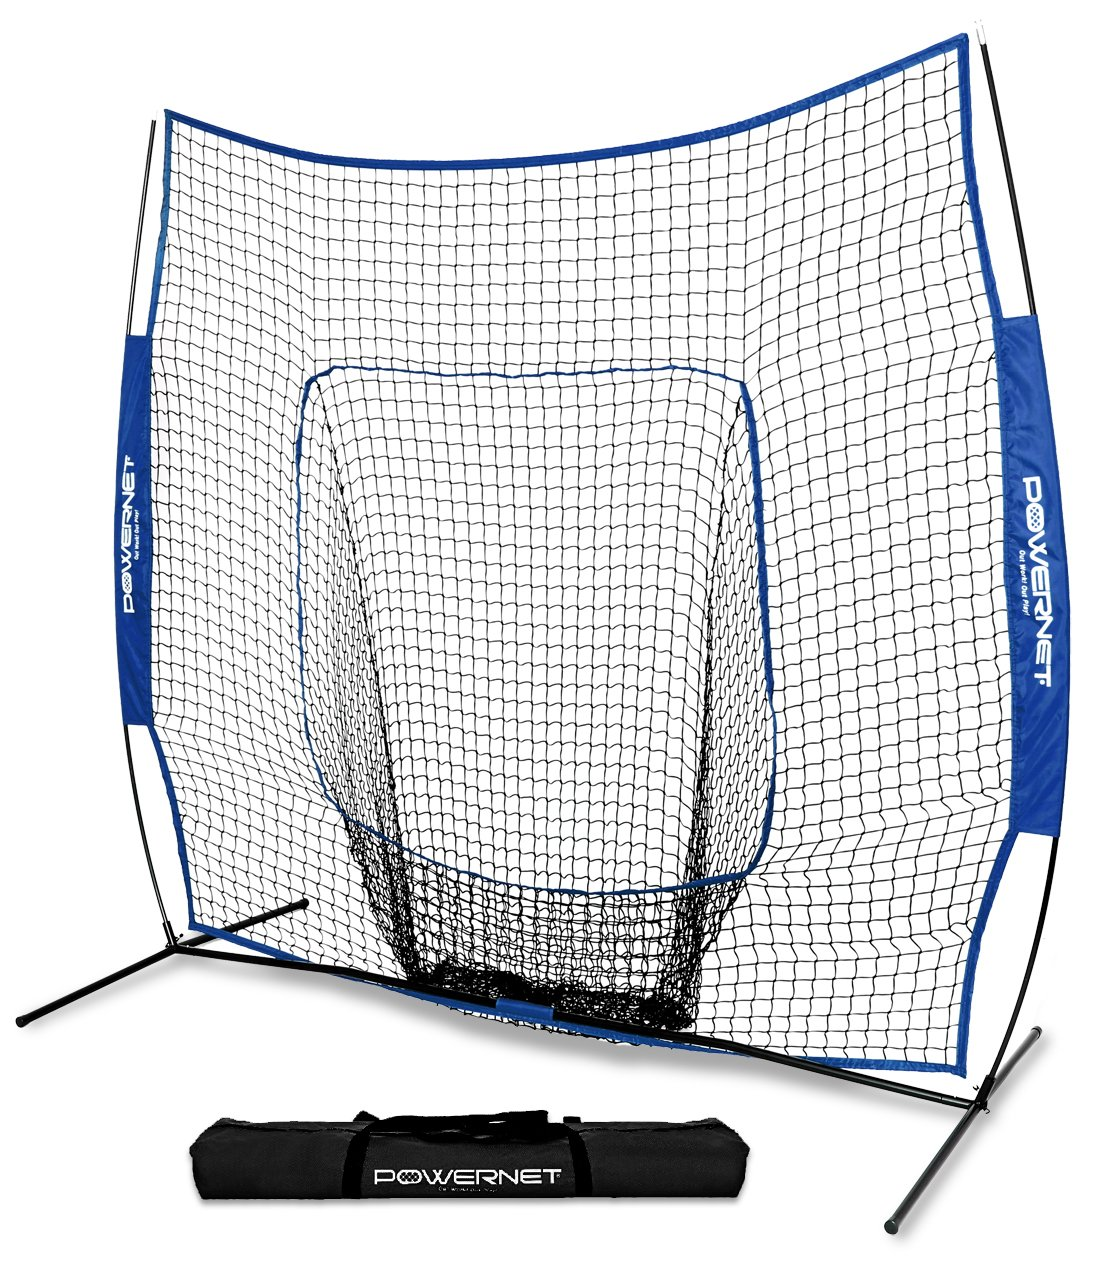 PowerNet Team Color Baseball Softball 7x7 Hitting Net w/Bow Frame (Royal Blue) by PowerNet